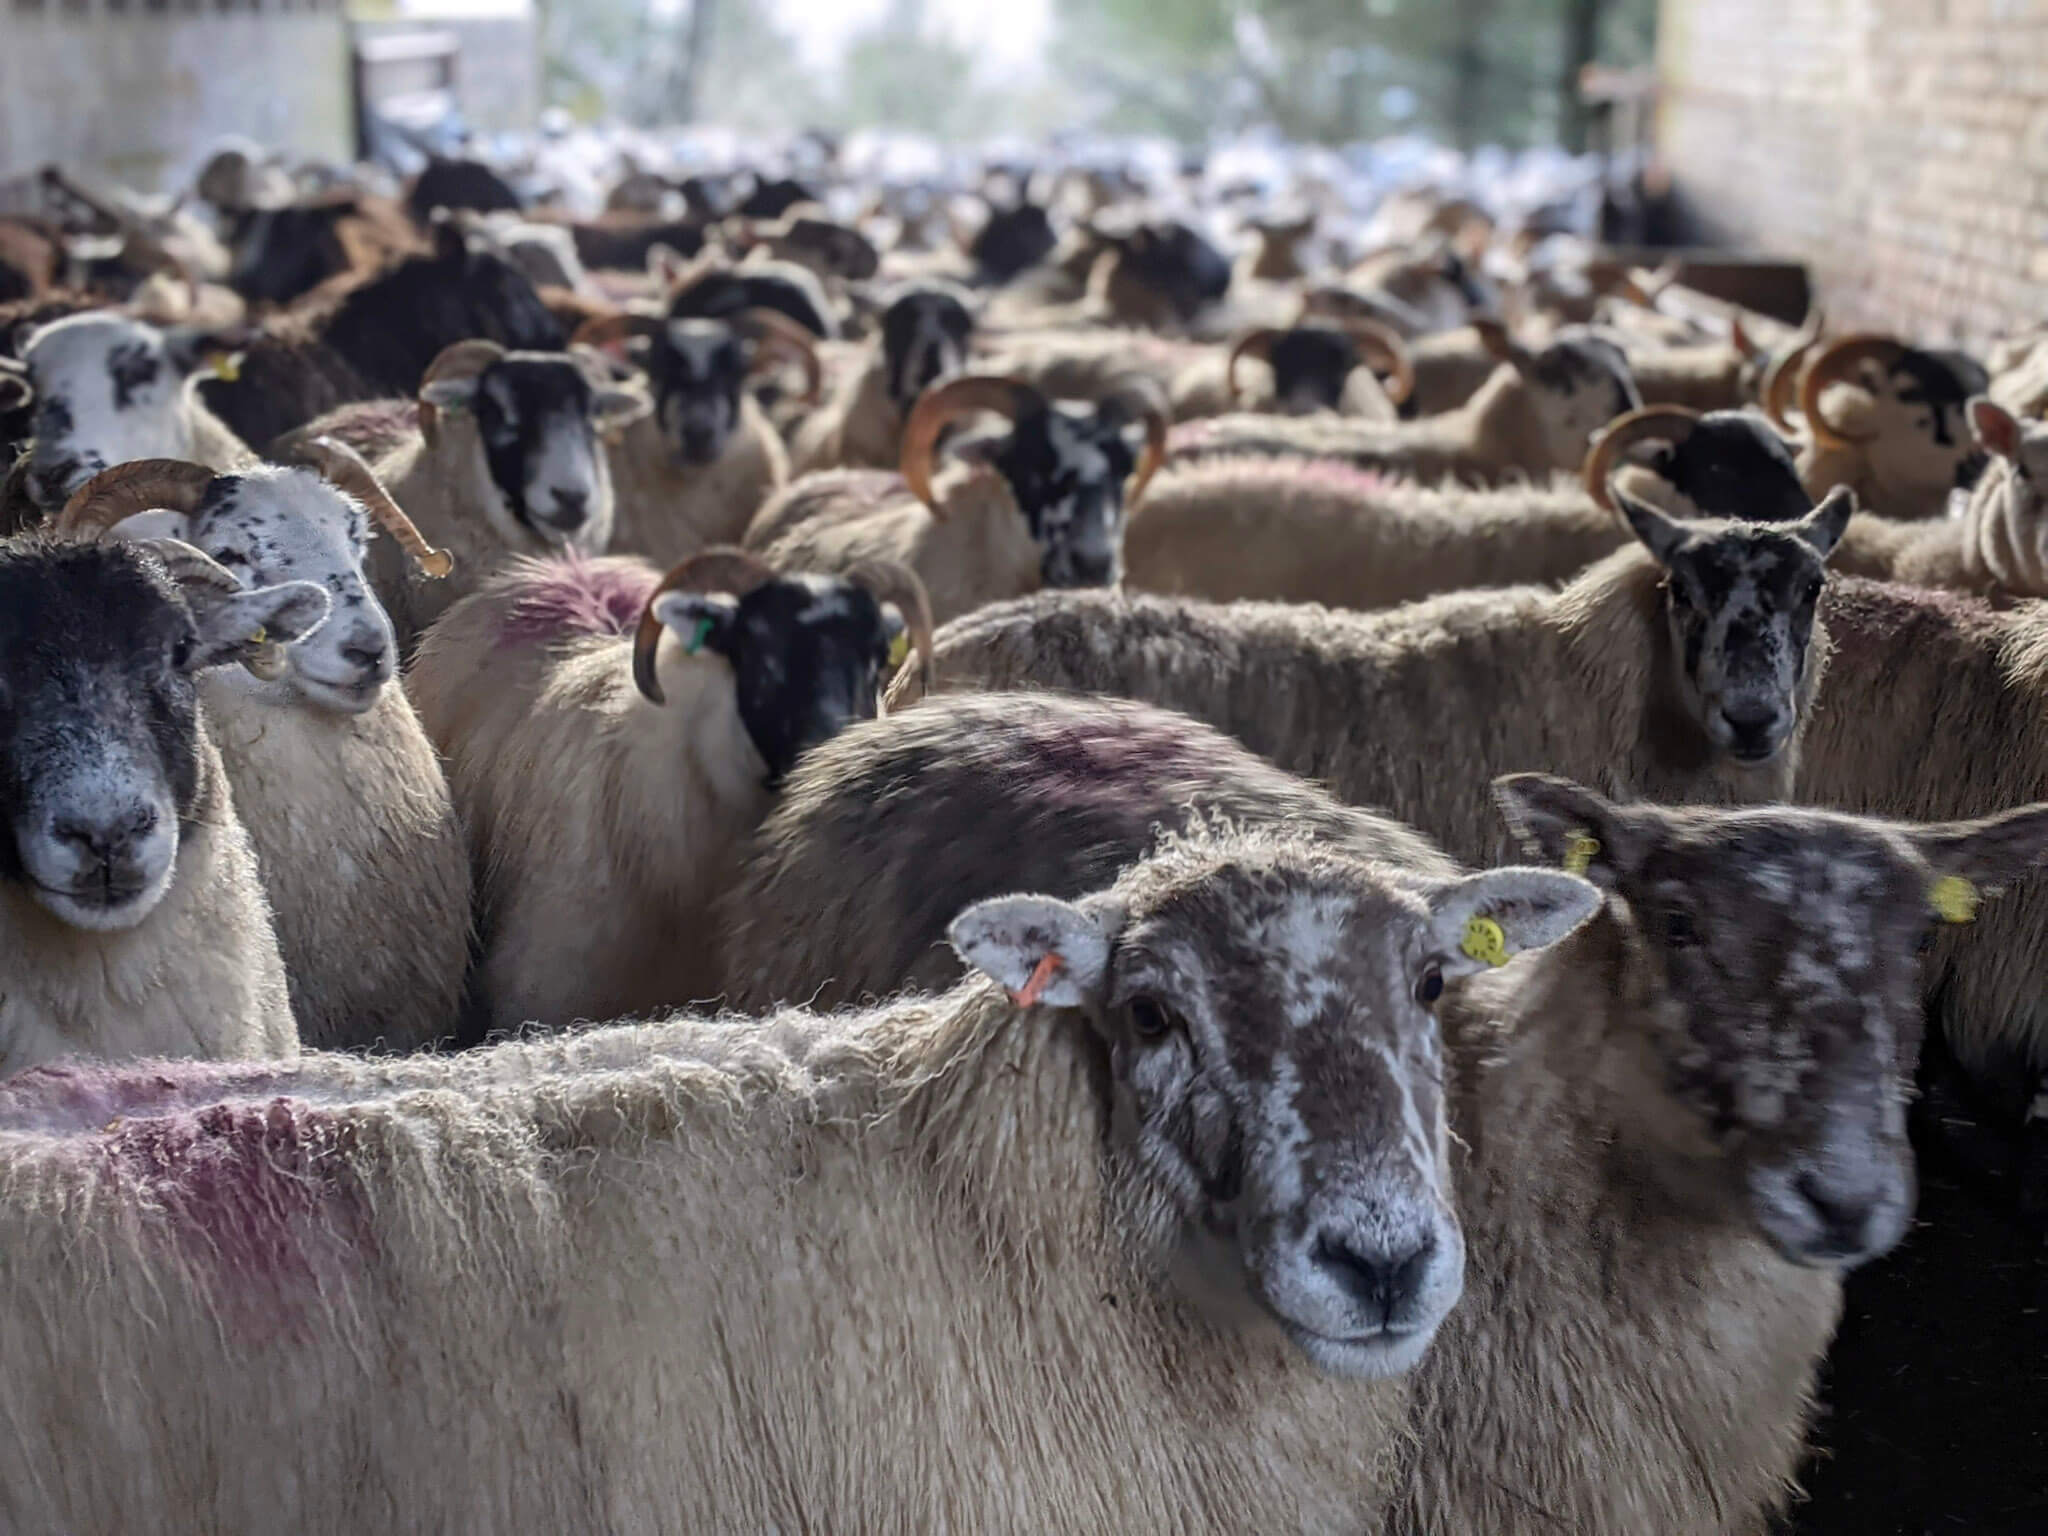 Over 300 pregnant sheep waiting to be scanned.